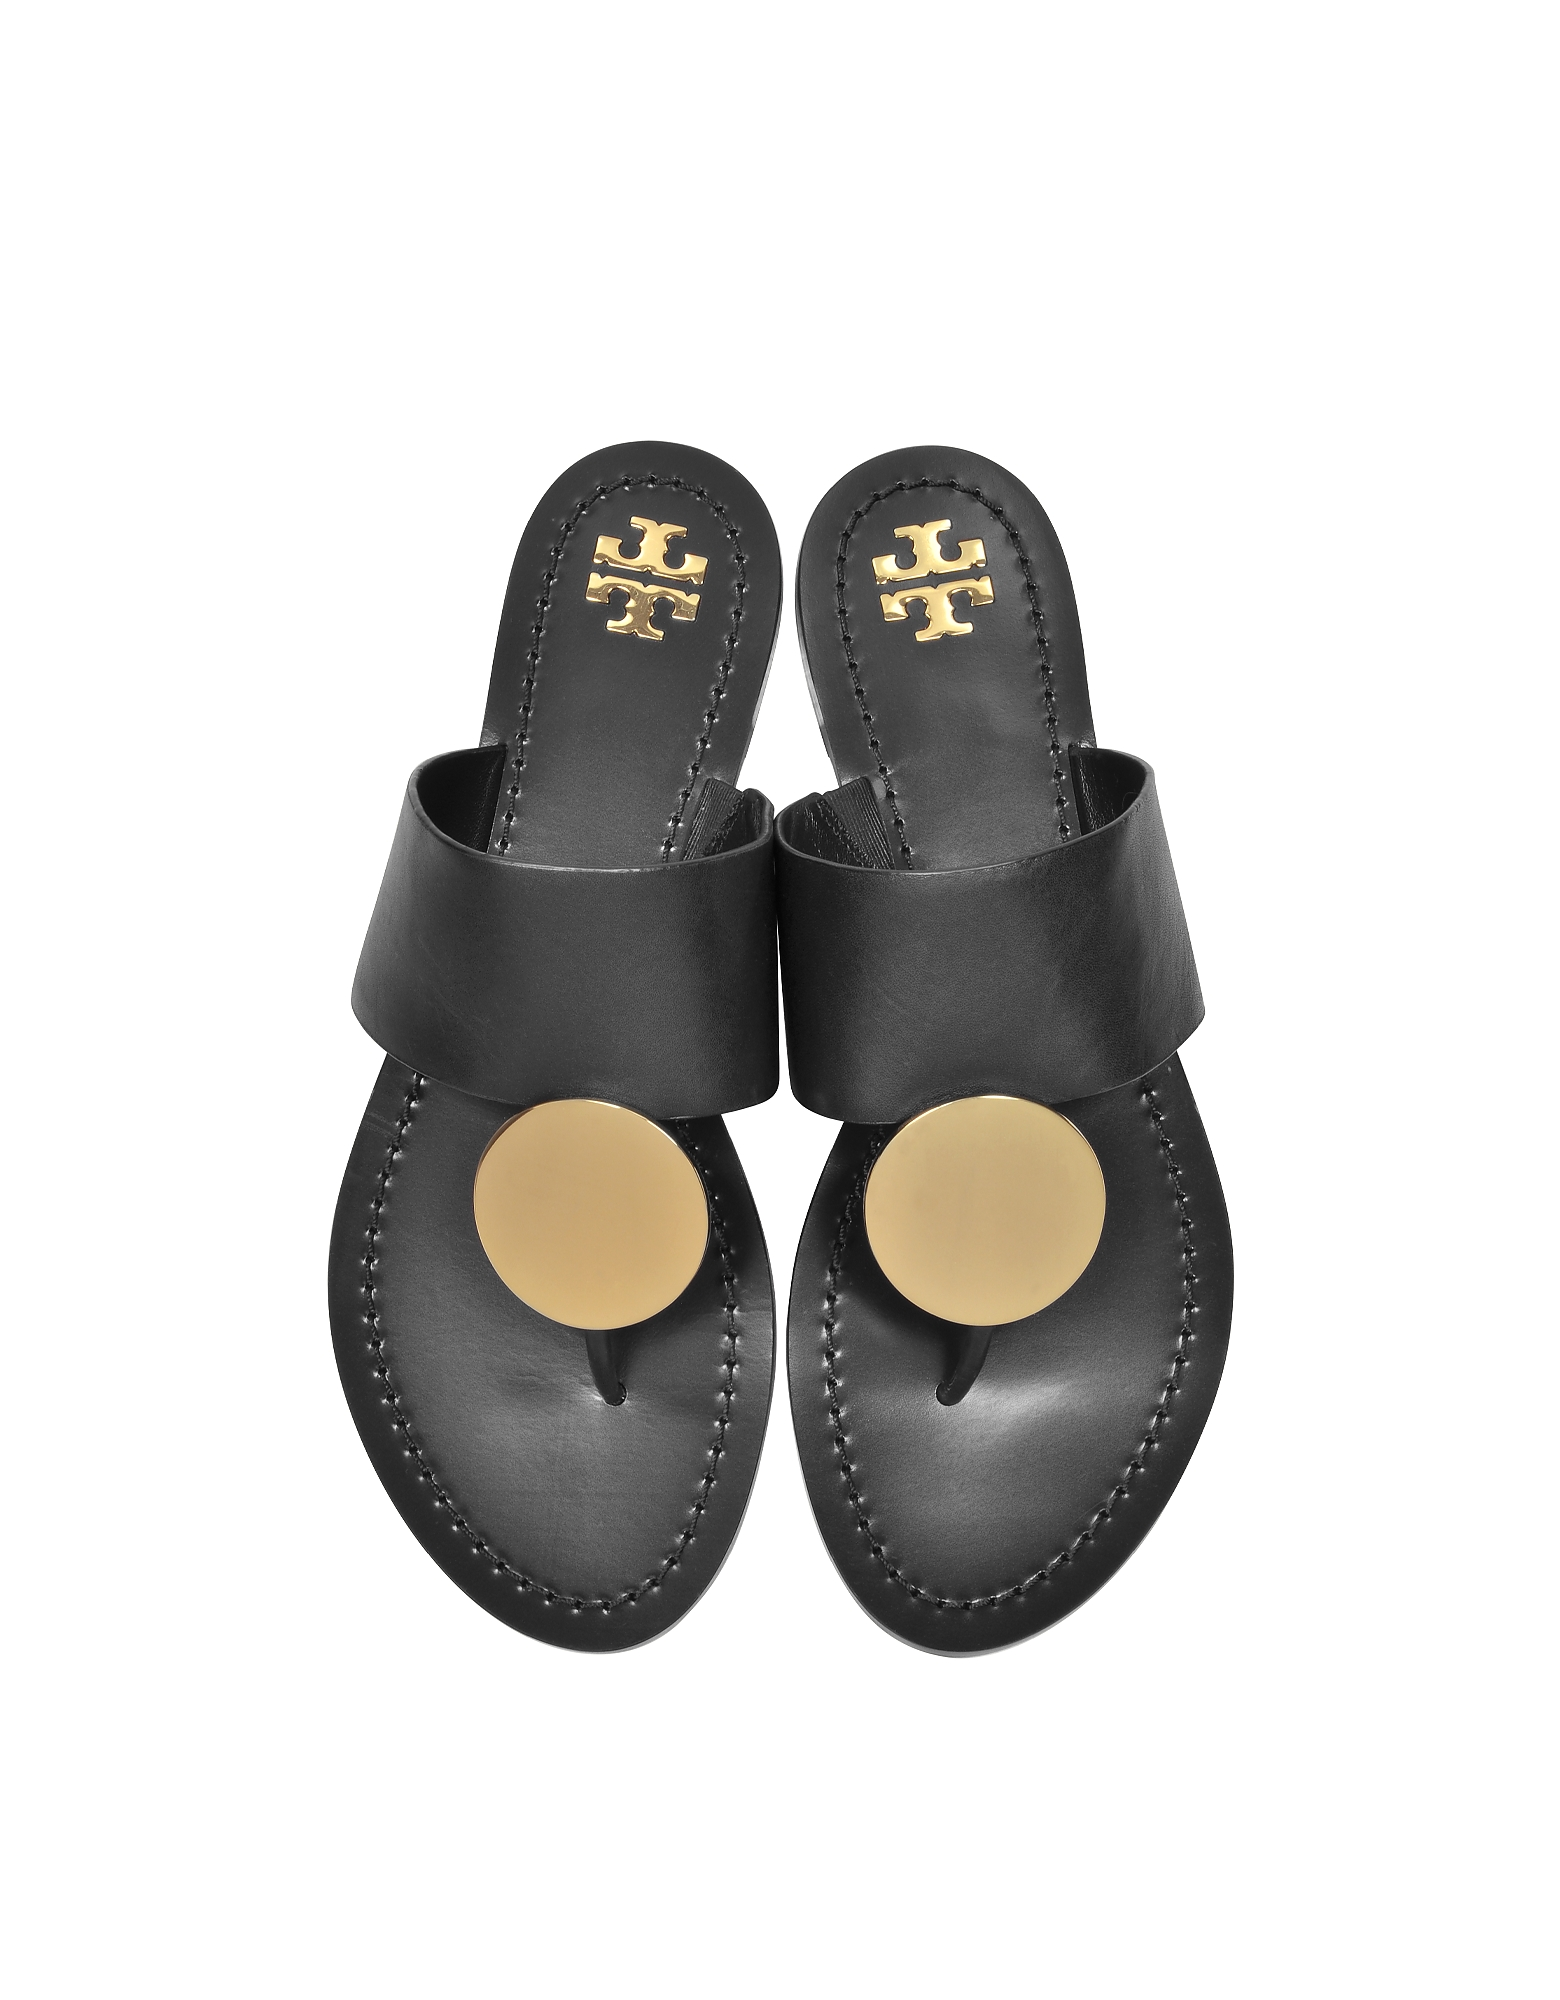 Black Leather Patos Disc Sandals